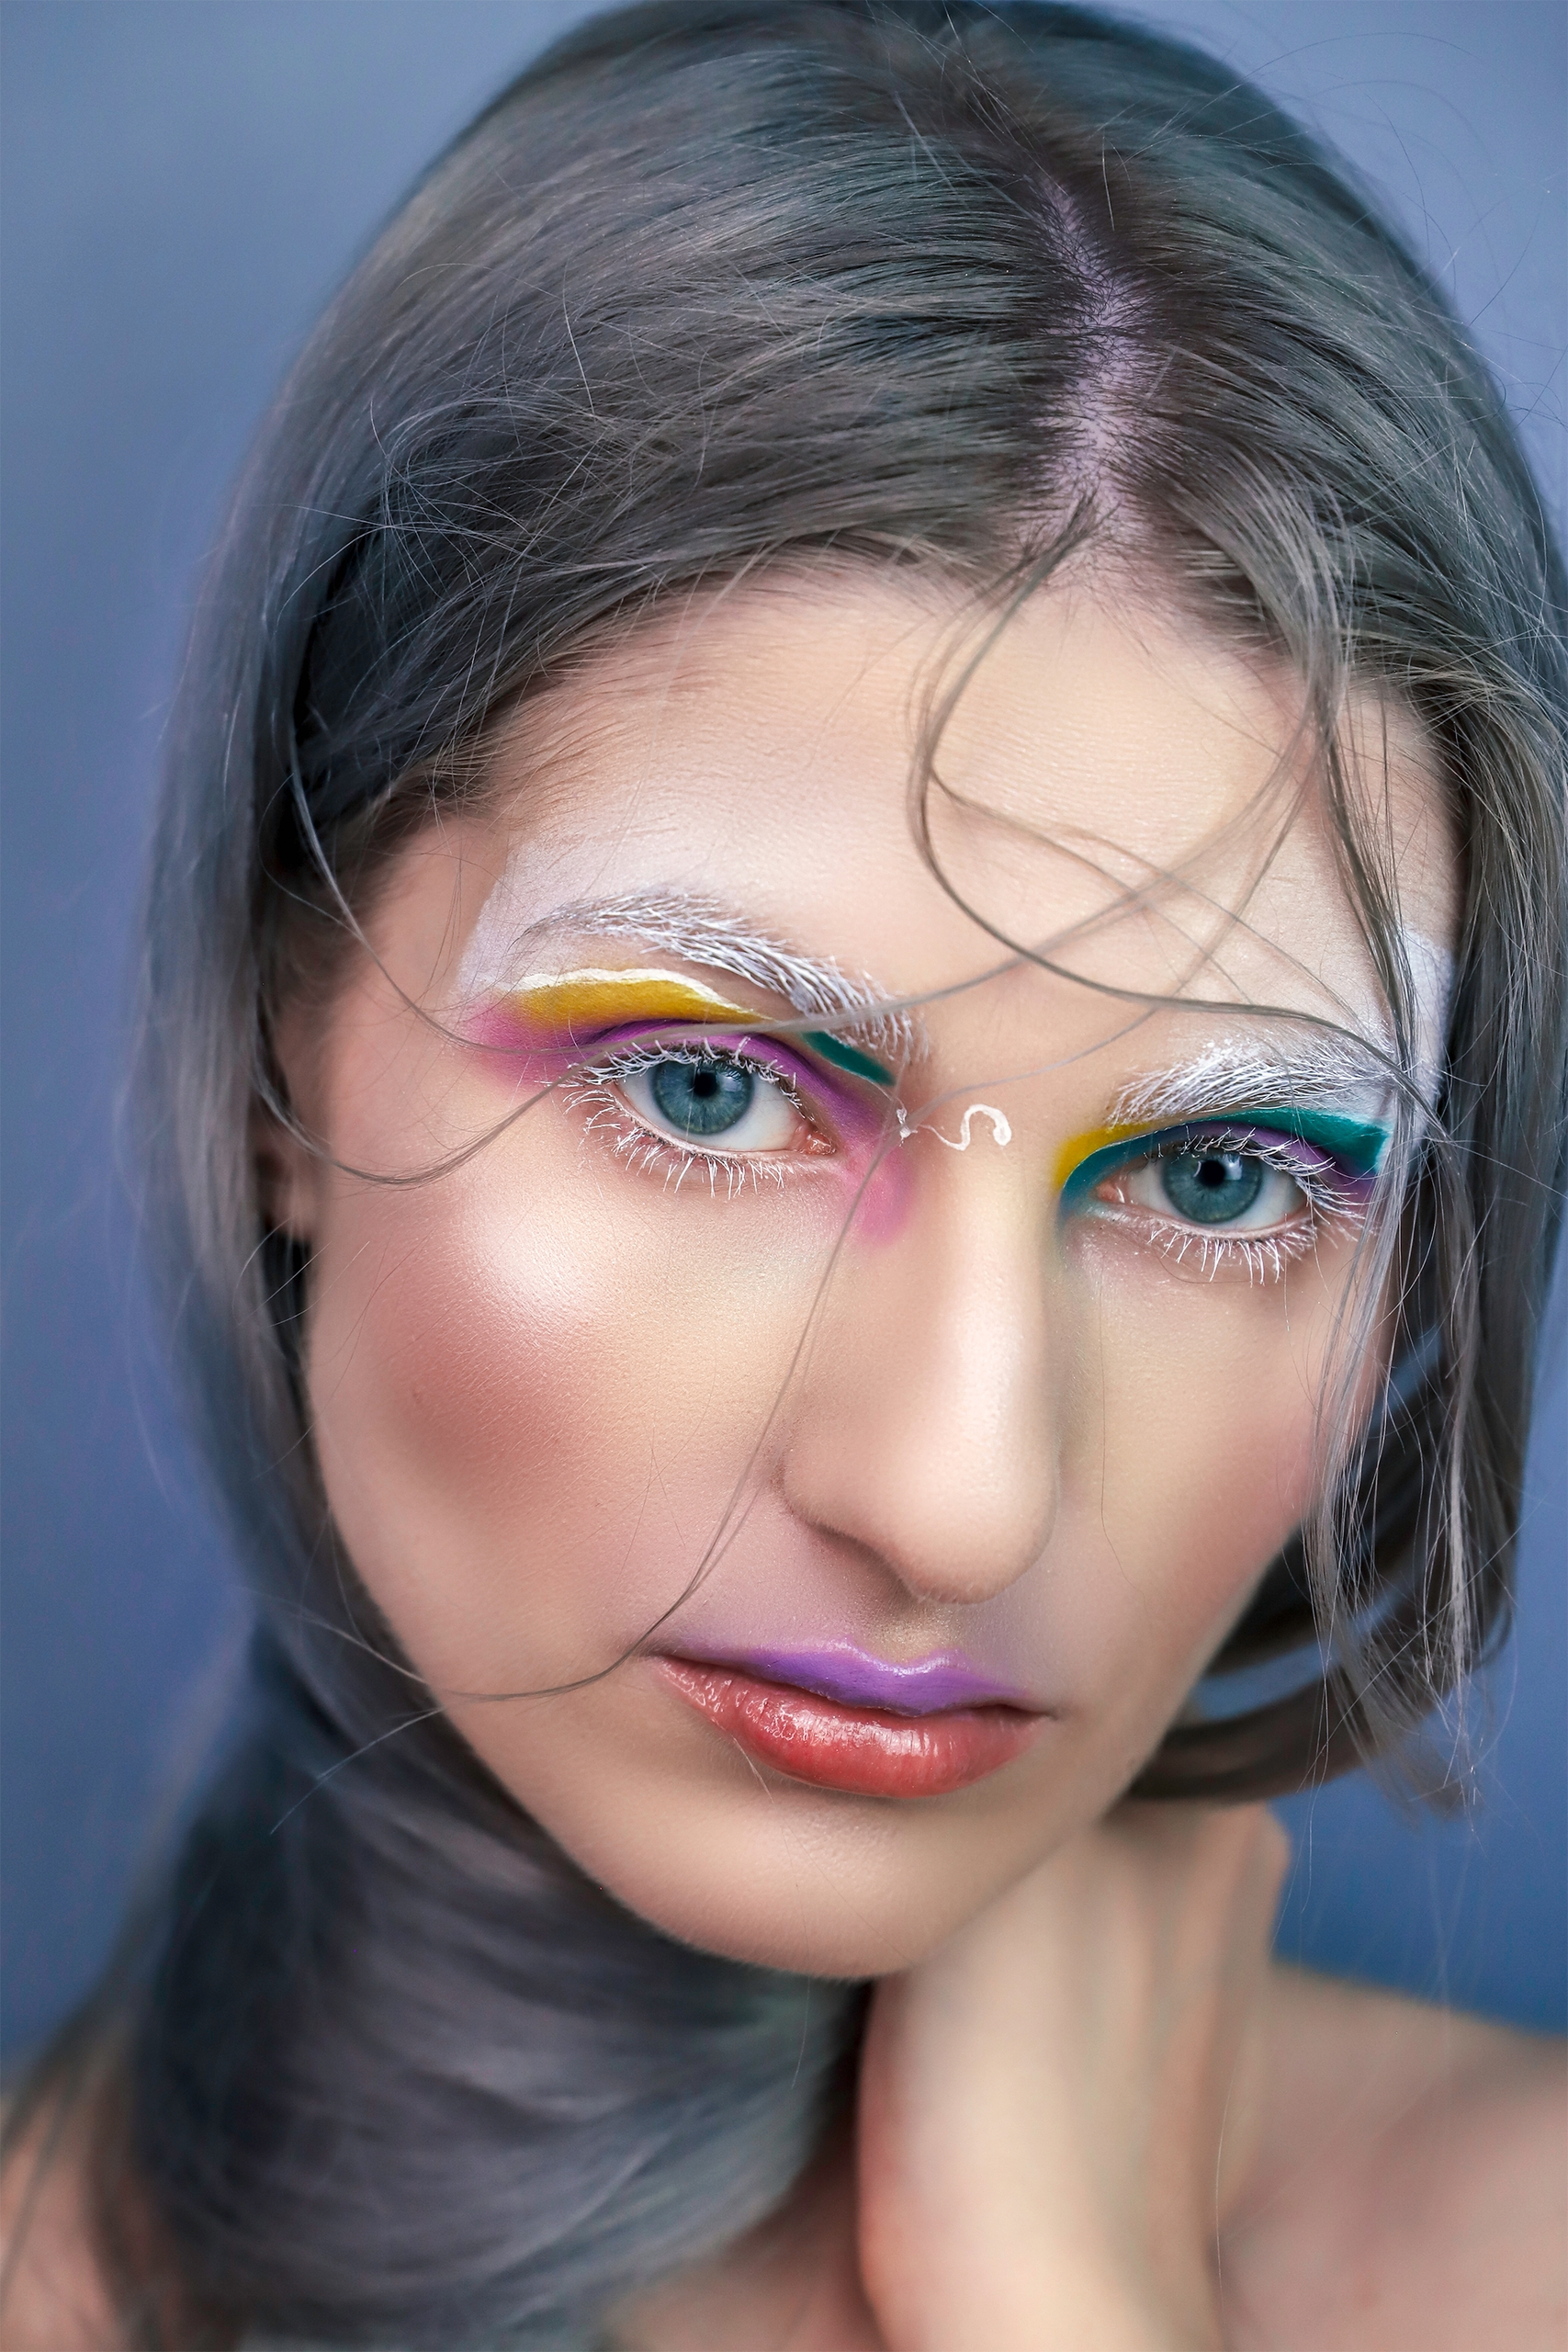 Make-up inspirowany obrazem. 'Light_of_Iris' by Georgia_O'Keeffe